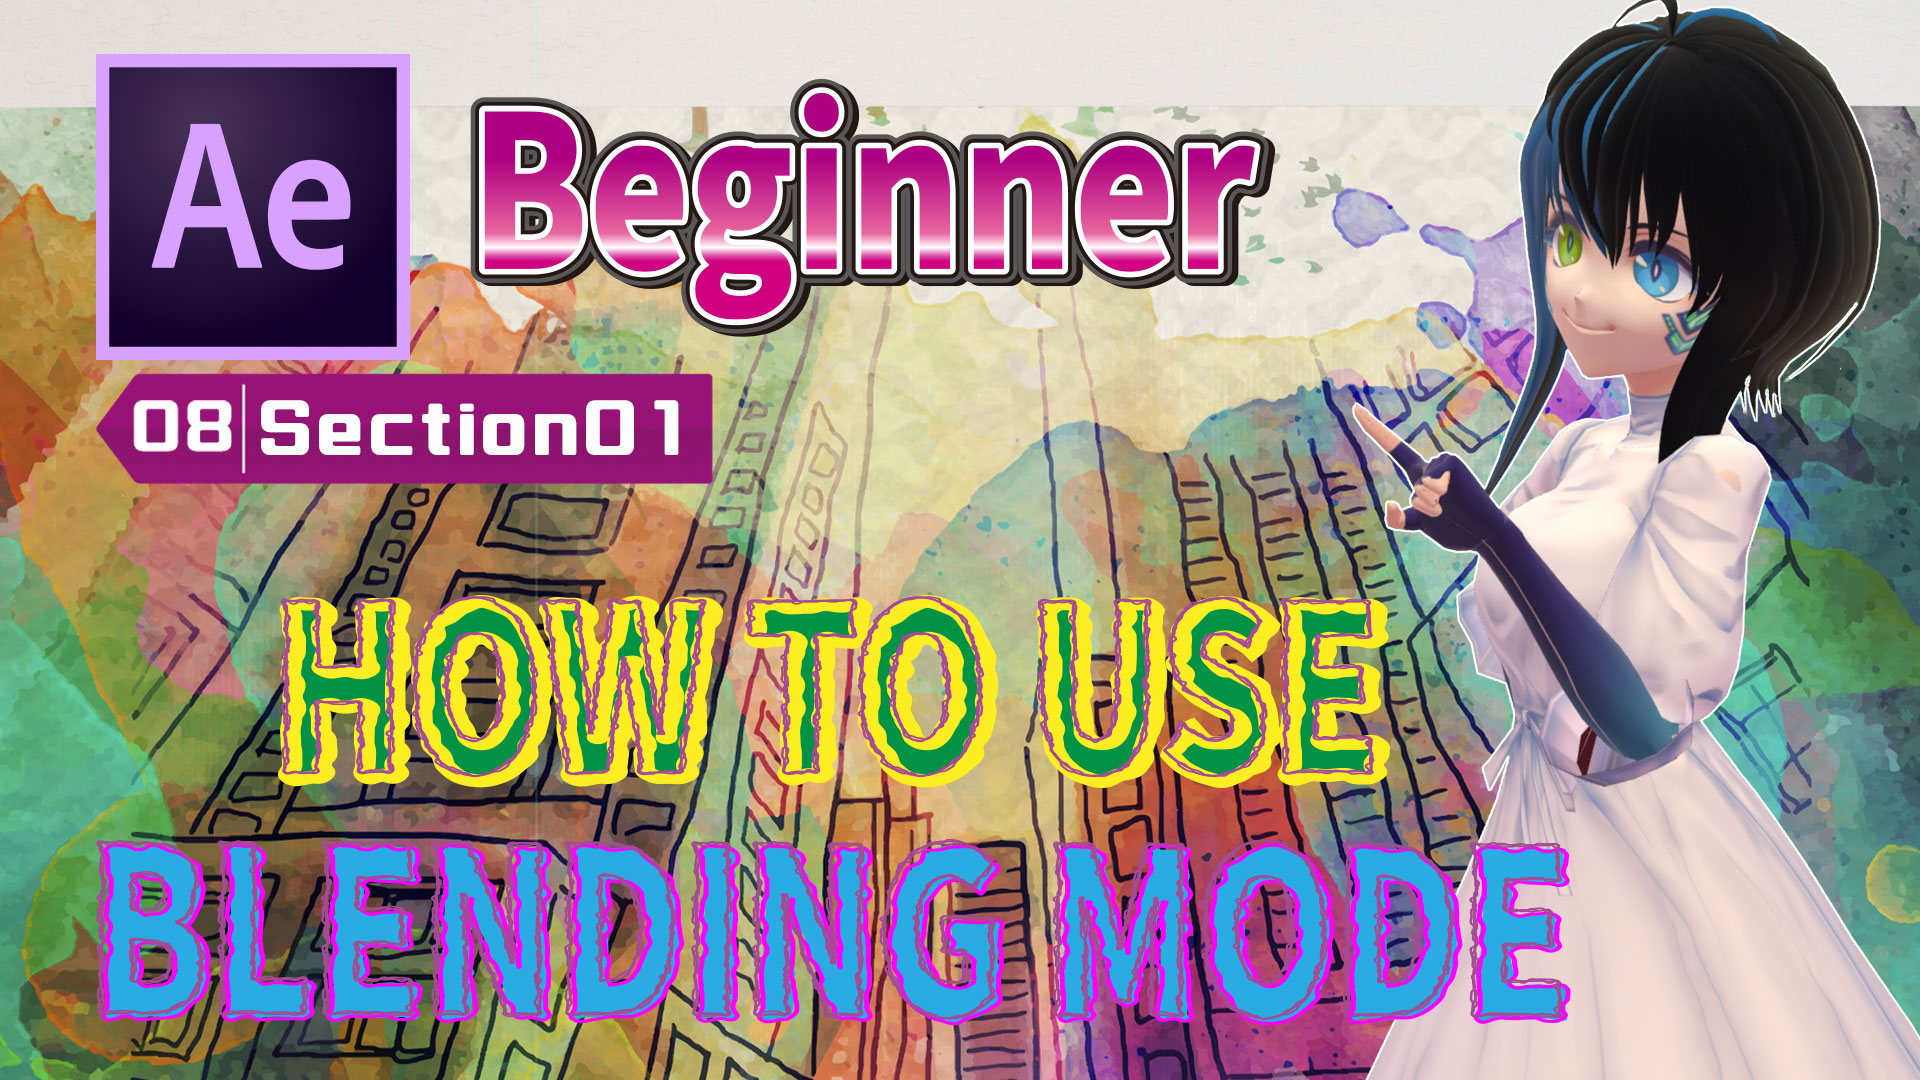 HOW TO USE BLENDING MODE